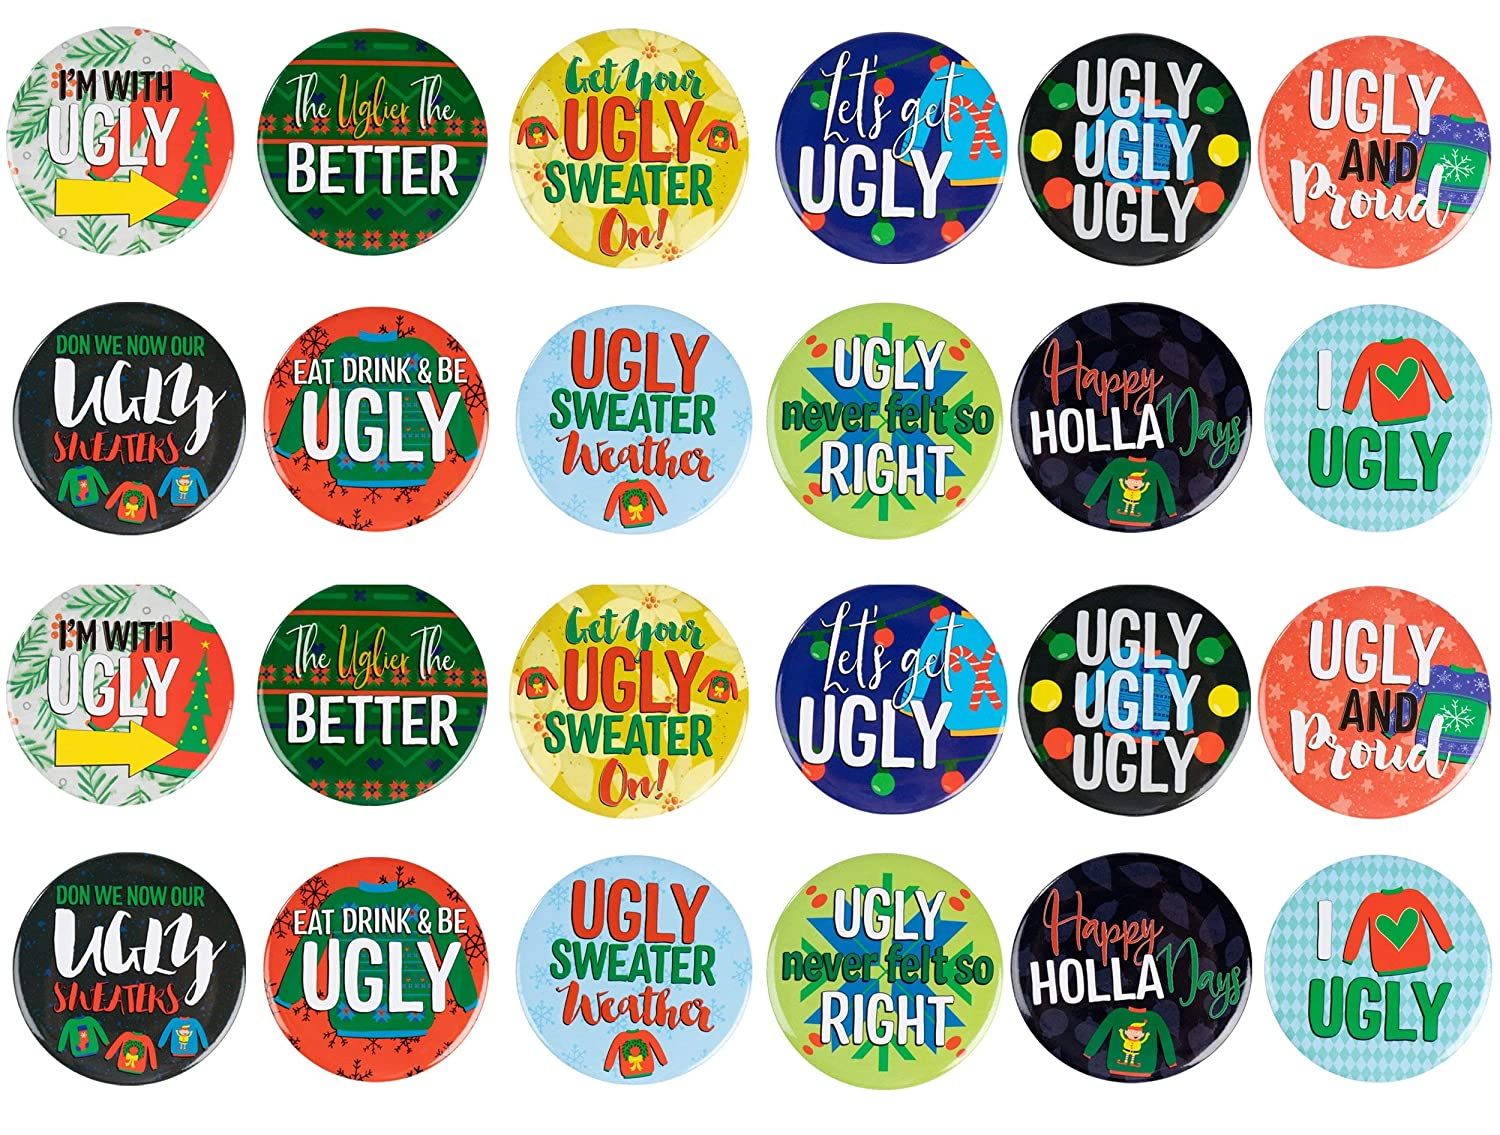 2.25 Inches Diameter Pinback Buttons Ugly Sweater Themed Designs 24-Pack Christmas Round Button Pins in 12 Designs for Kids Party Favors